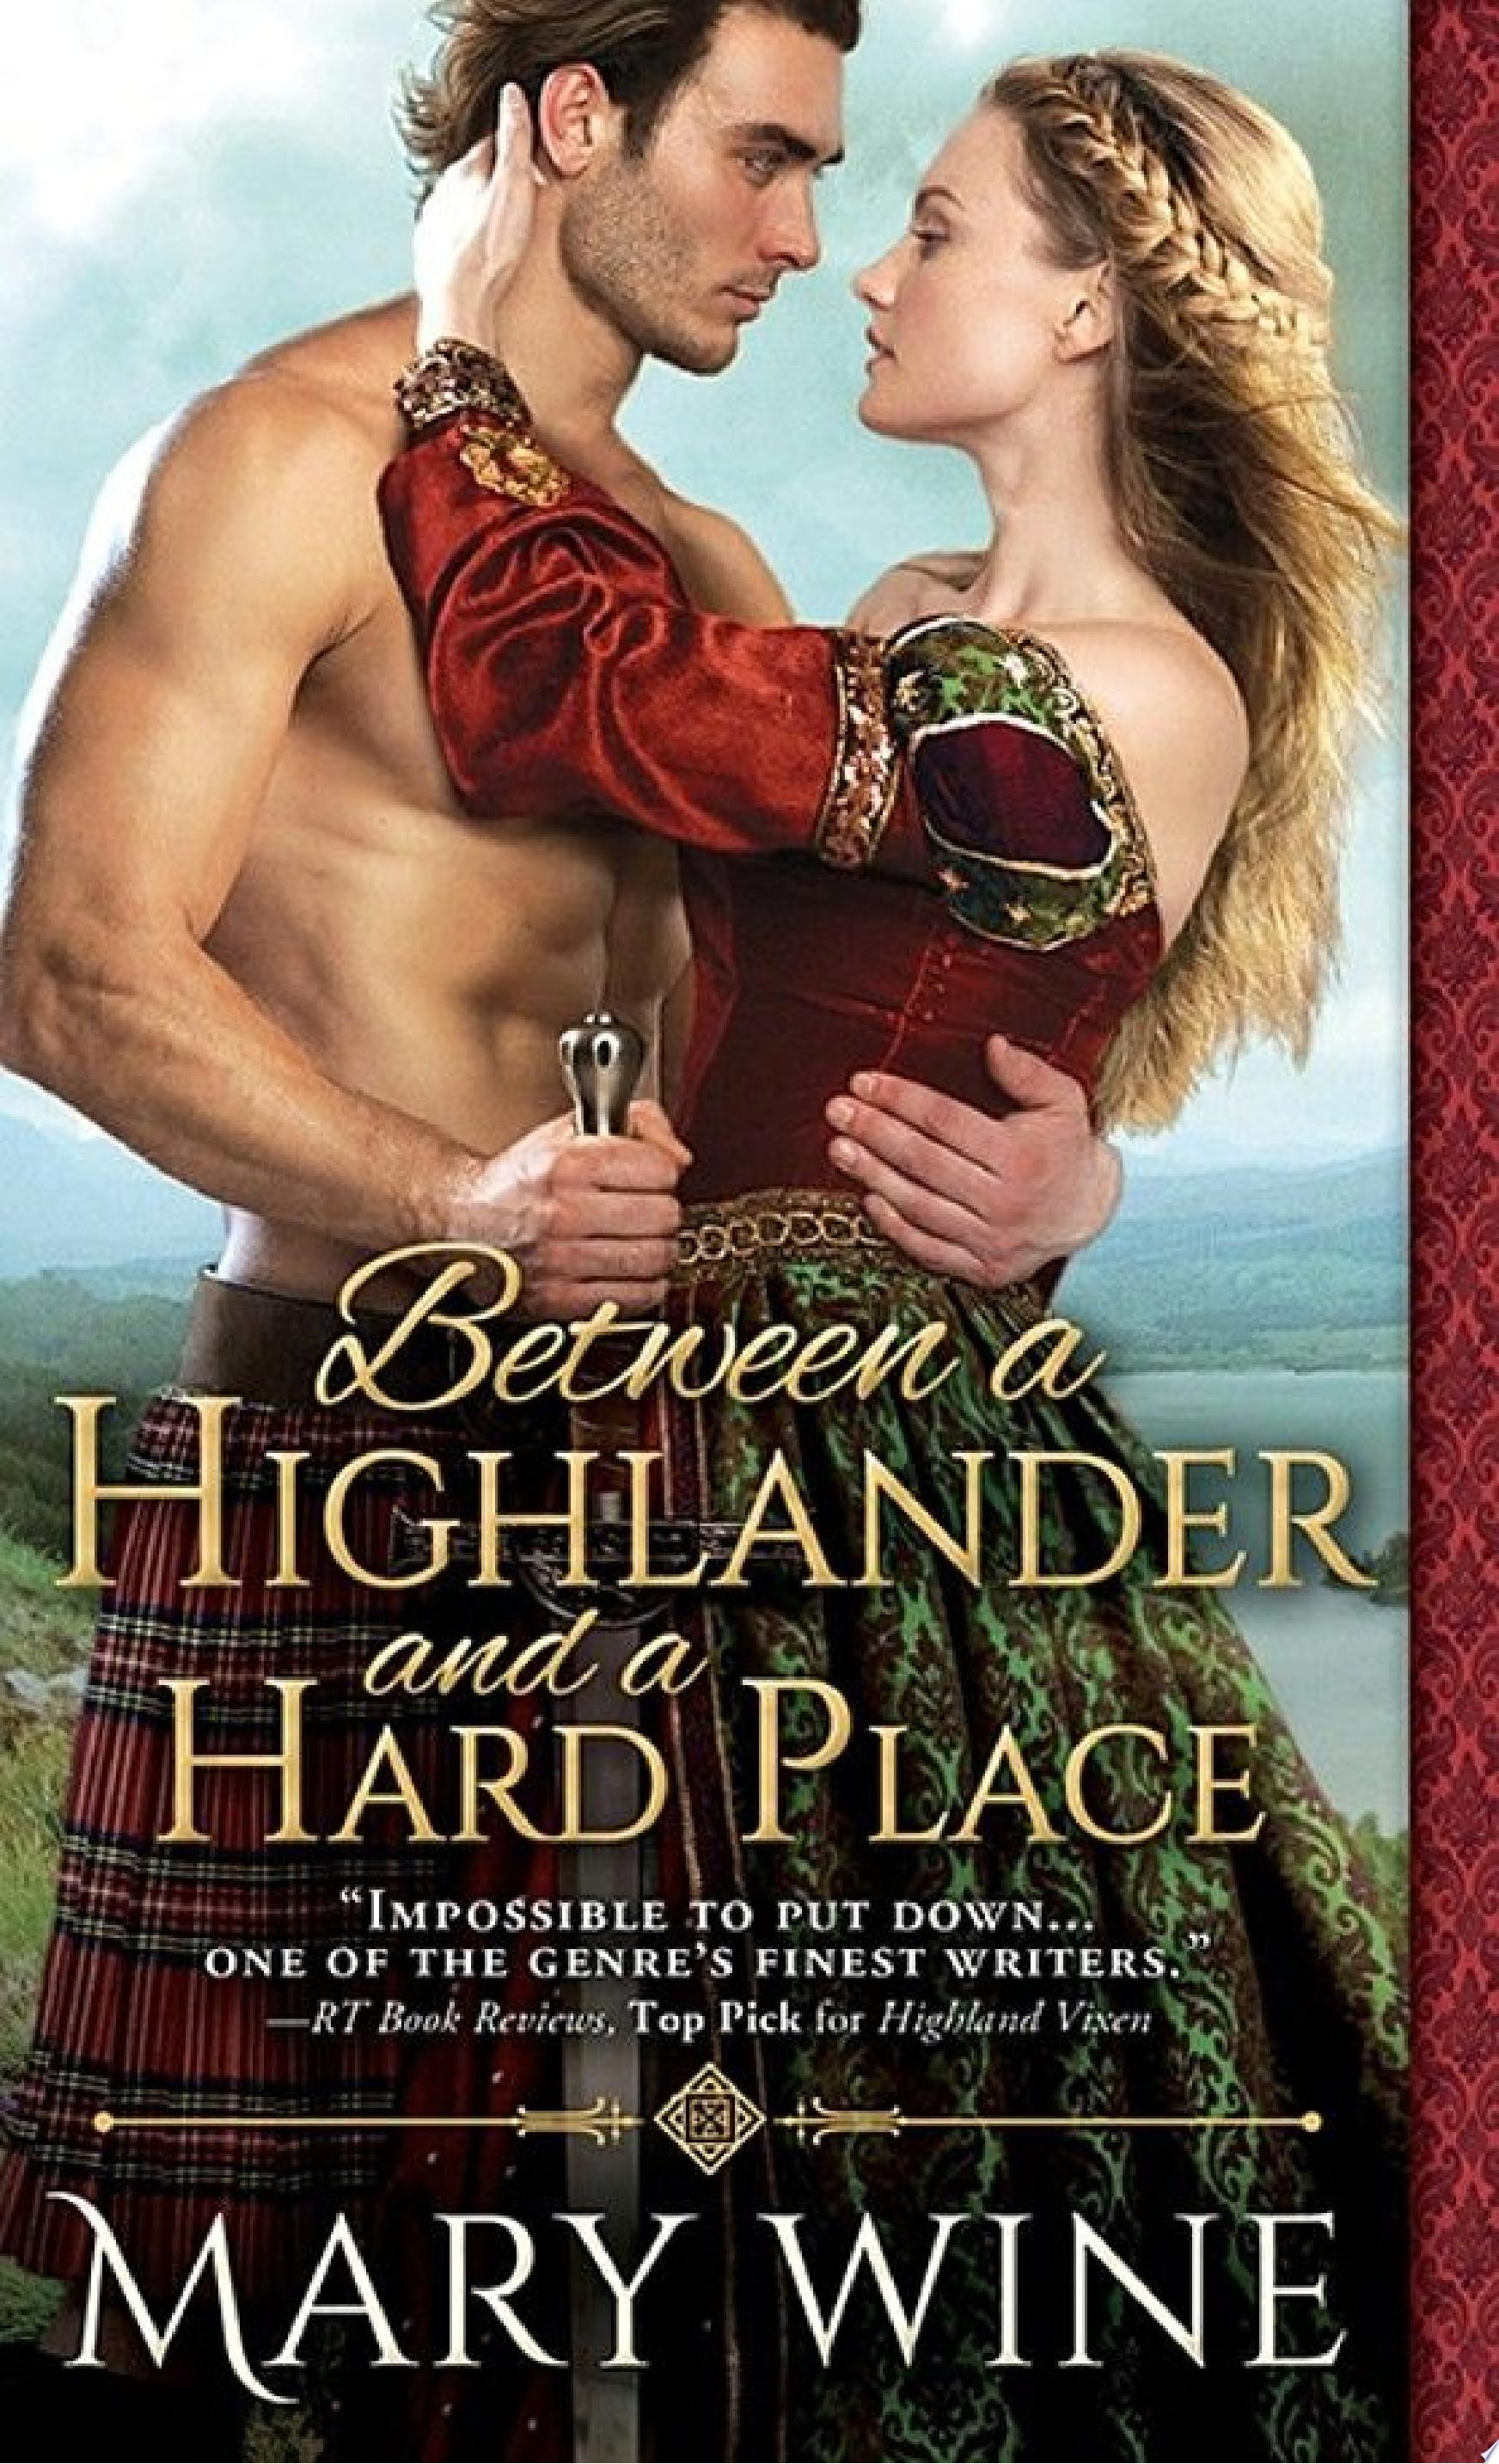 Between a Highlander and a Hard Place